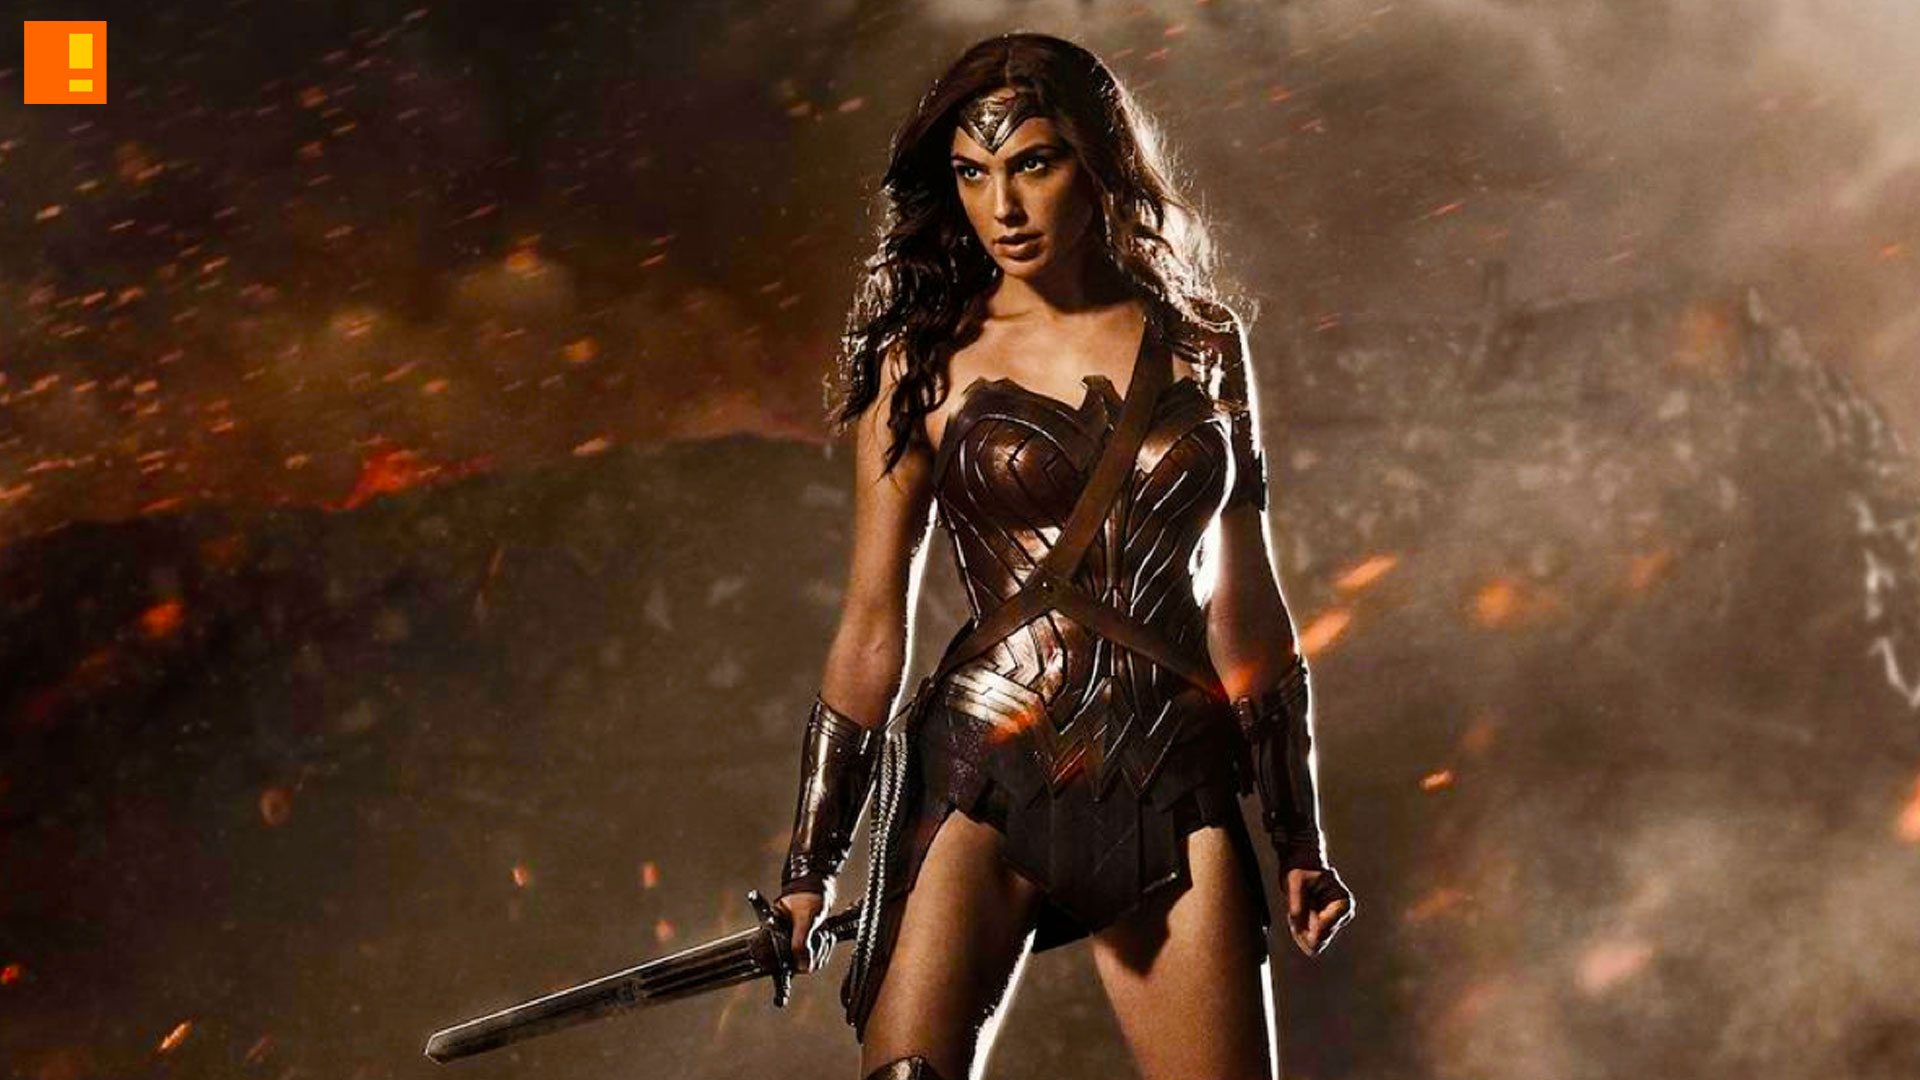 Wonder Woman is a retired superhero pushing 5,000 years in ""